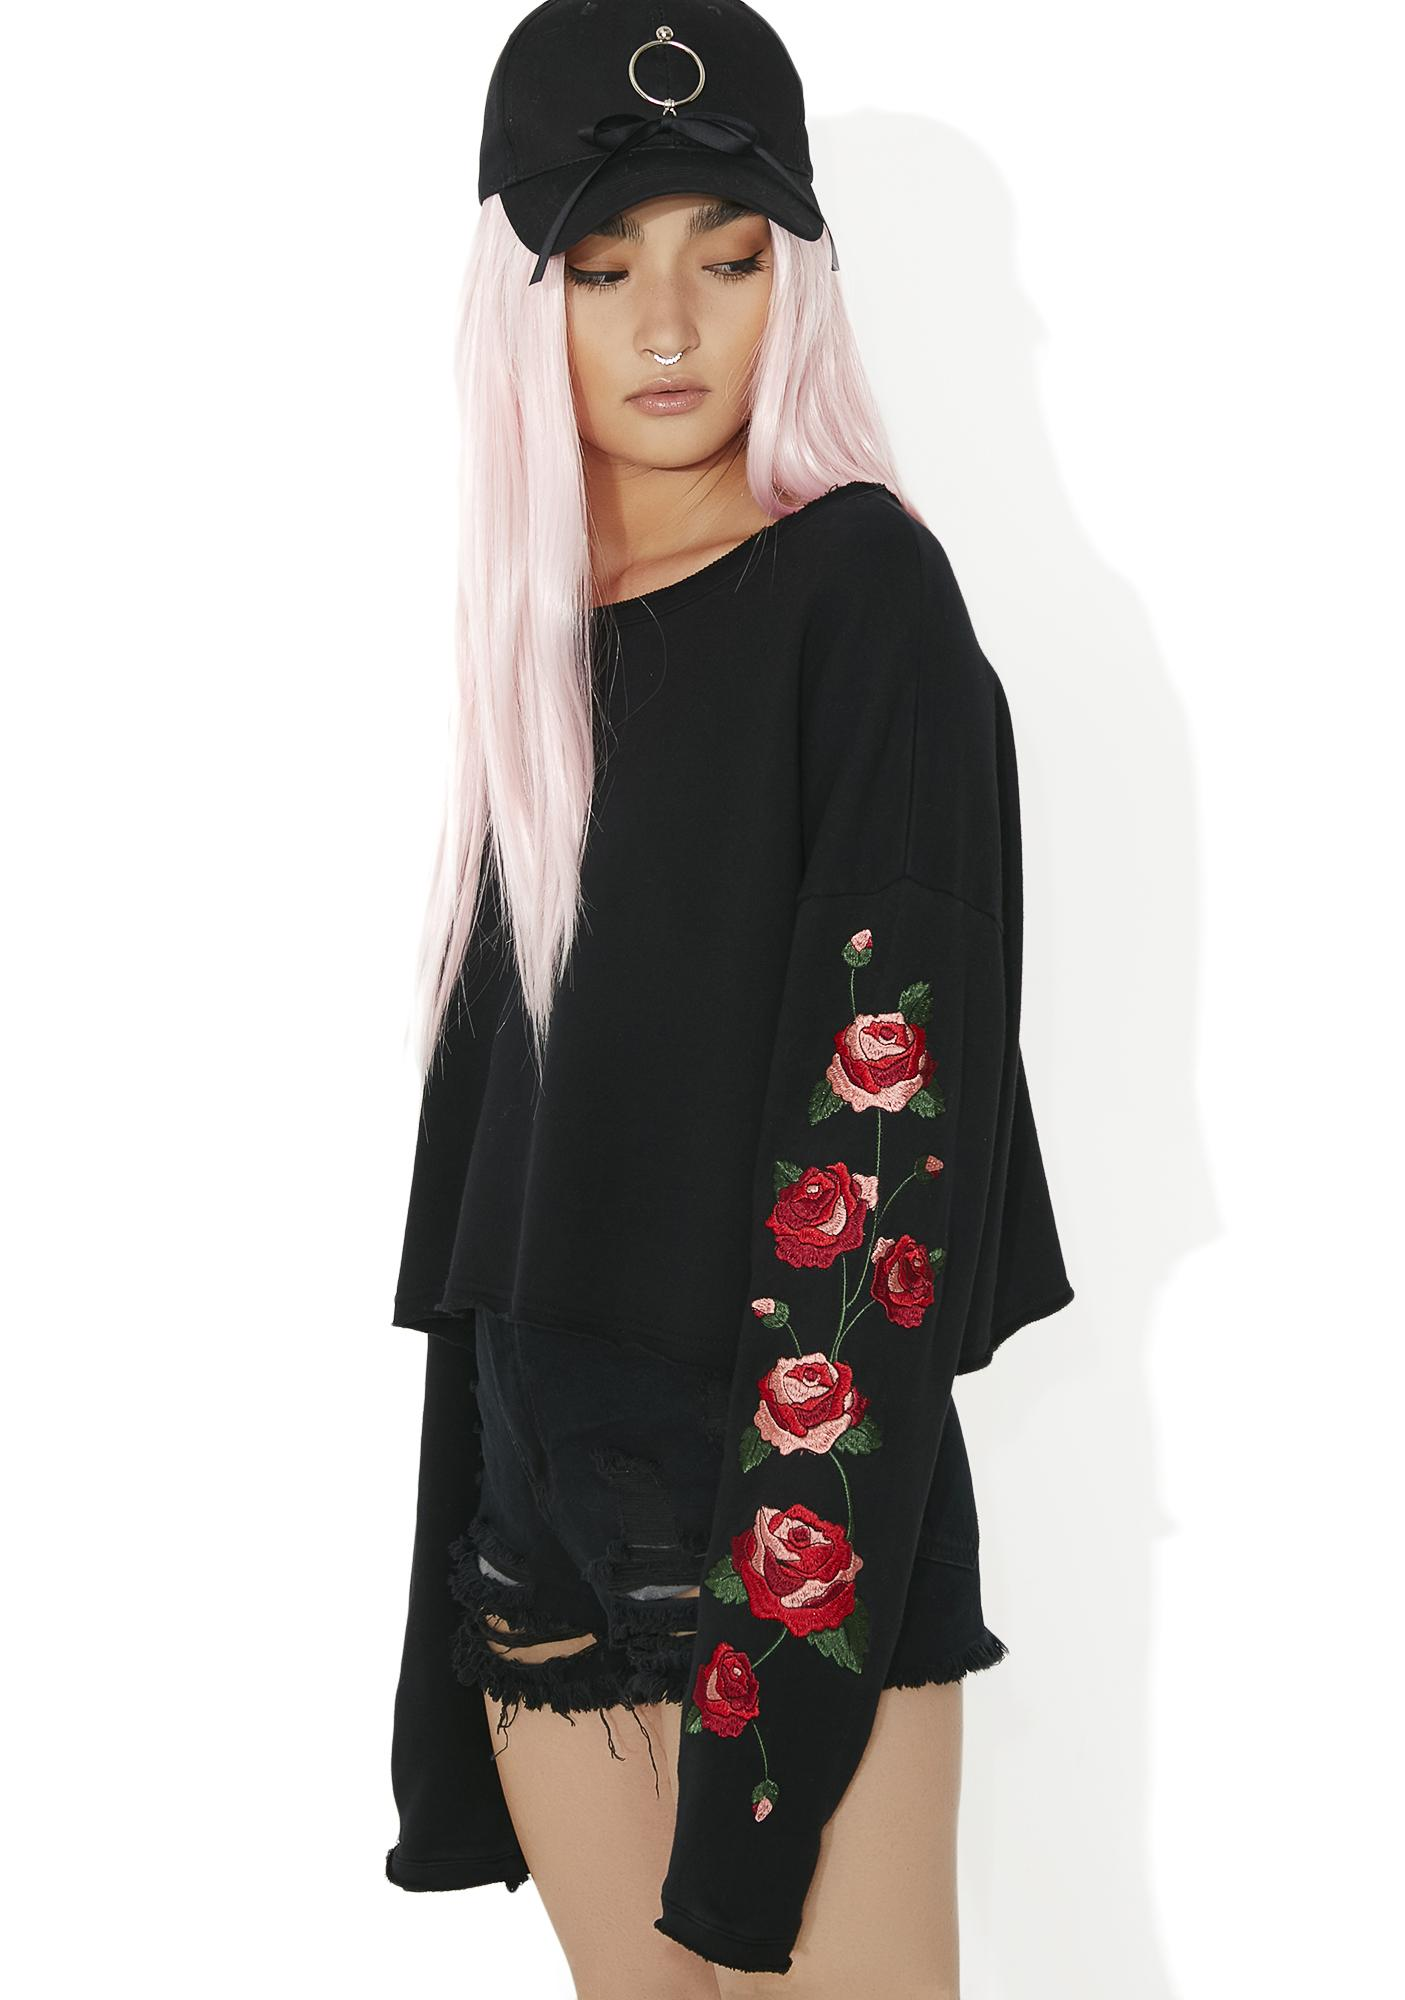 Among The Roses Embroidered Top